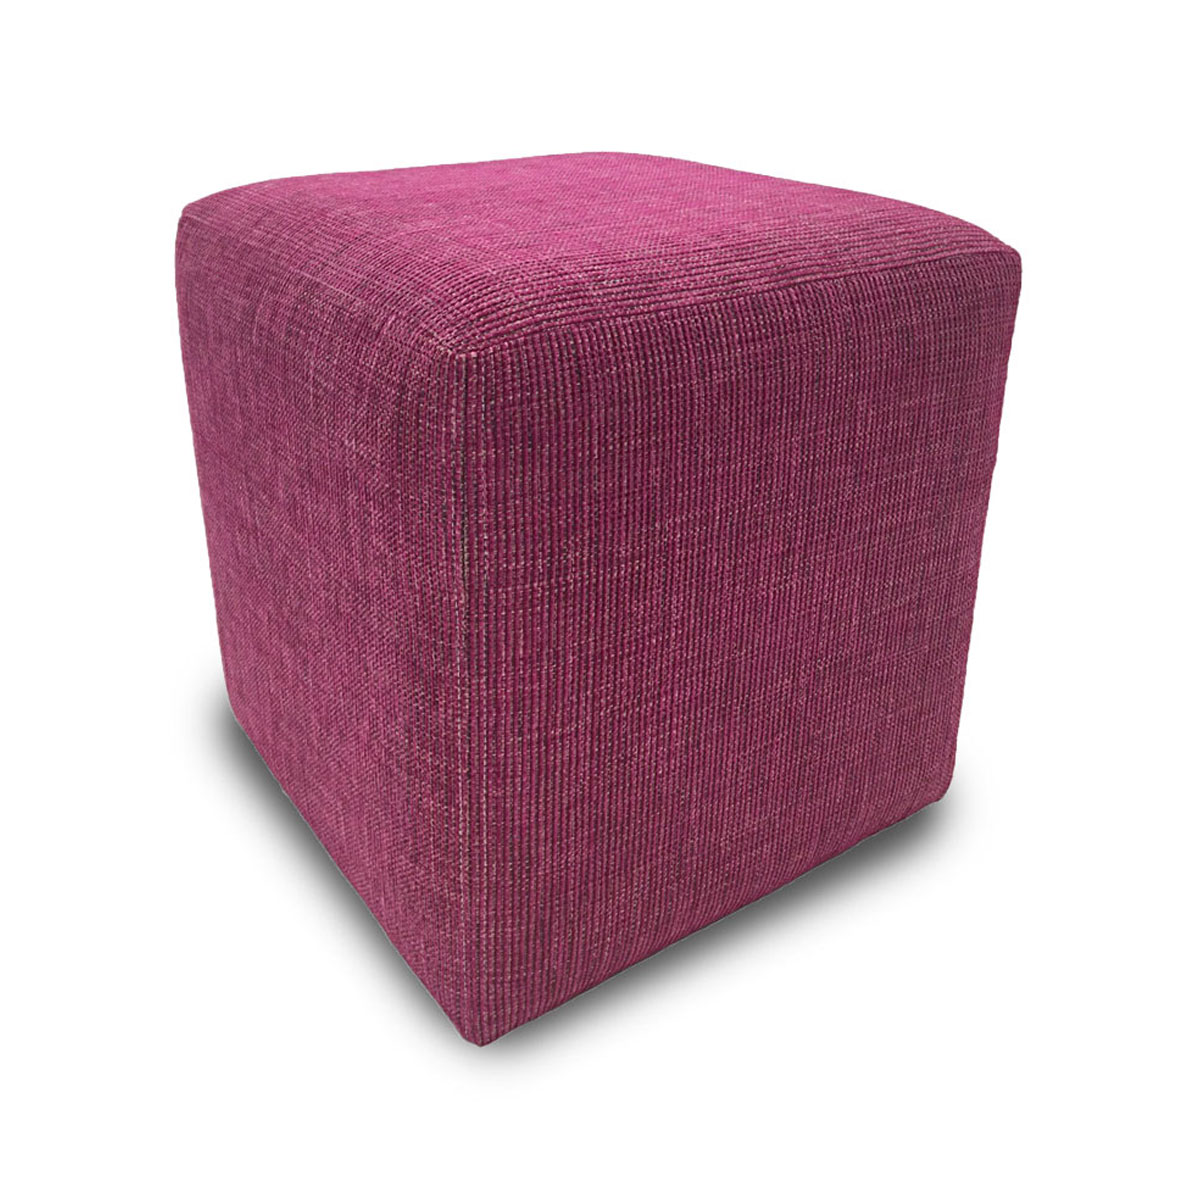 Brilliant Manhattan Square Ottoman Venue Industries Dailytribune Chair Design For Home Dailytribuneorg